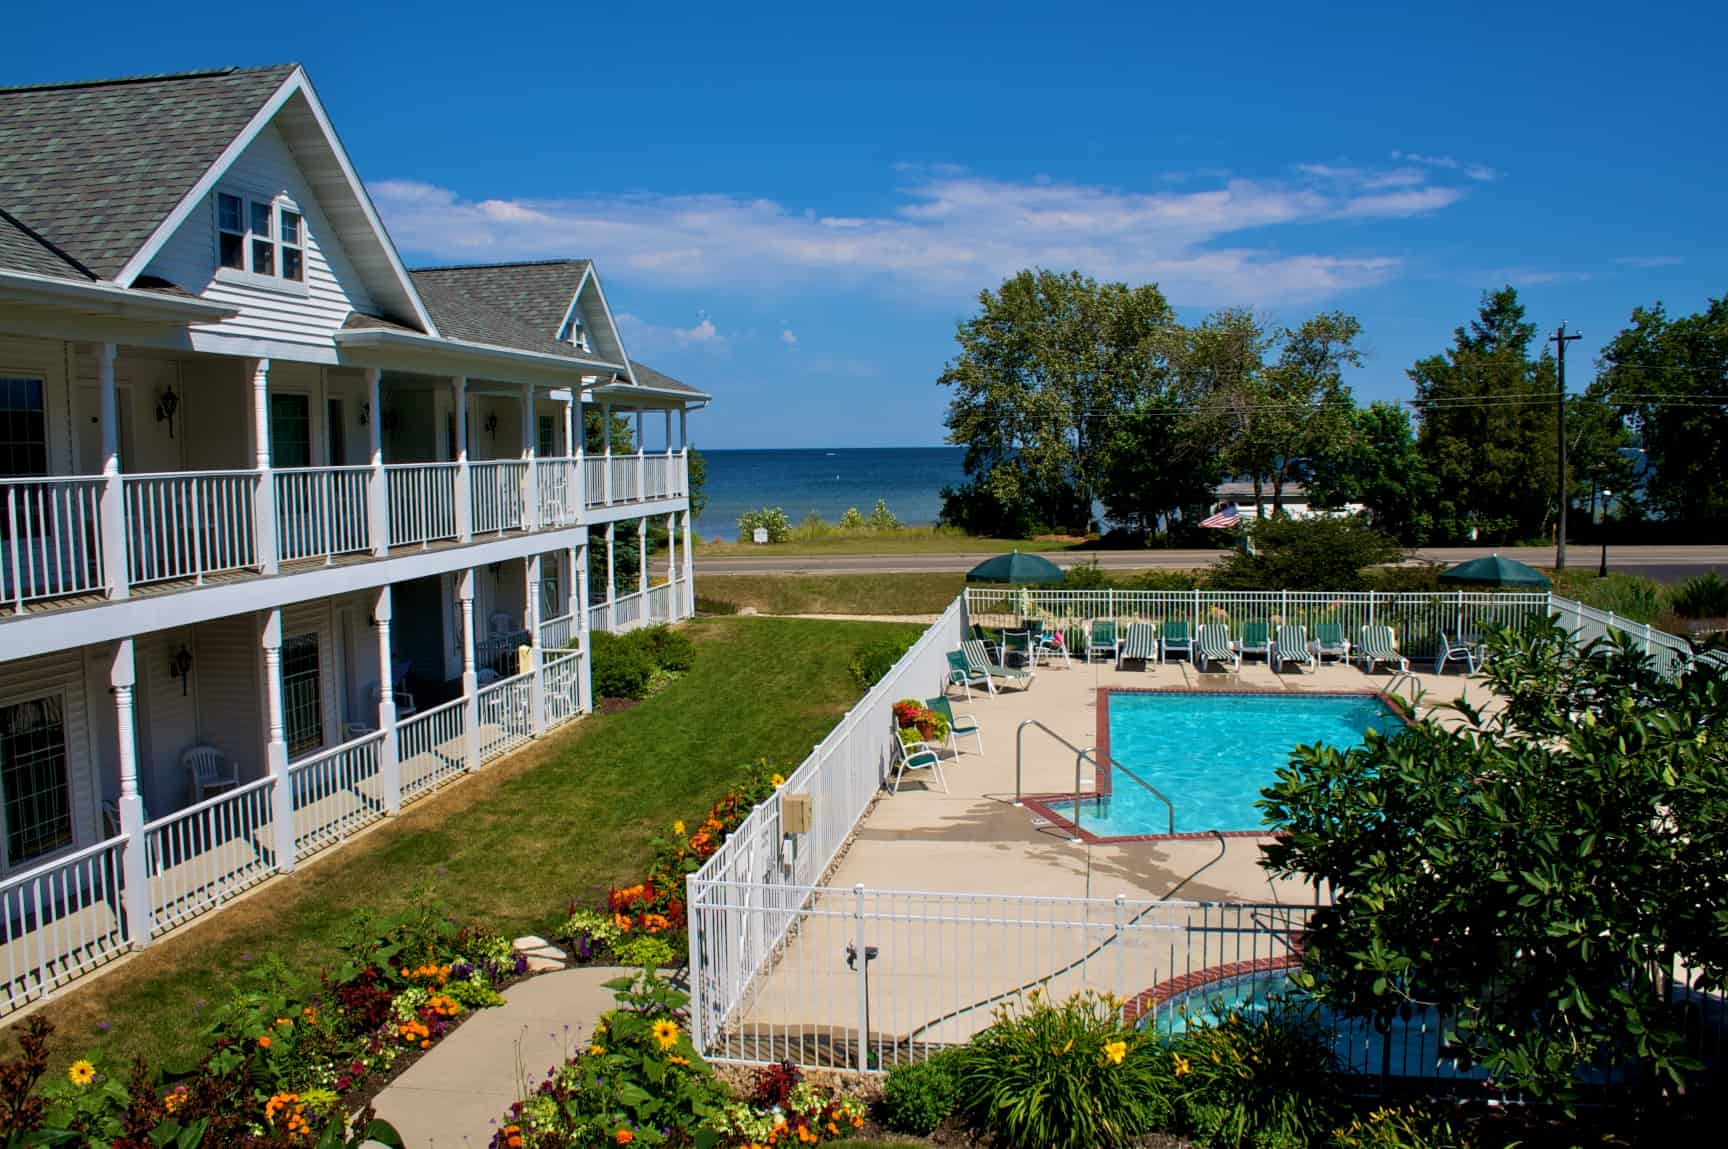 Bay Breeze Resort Lands the Cover of 2016 Wisconsin Lodging Directory